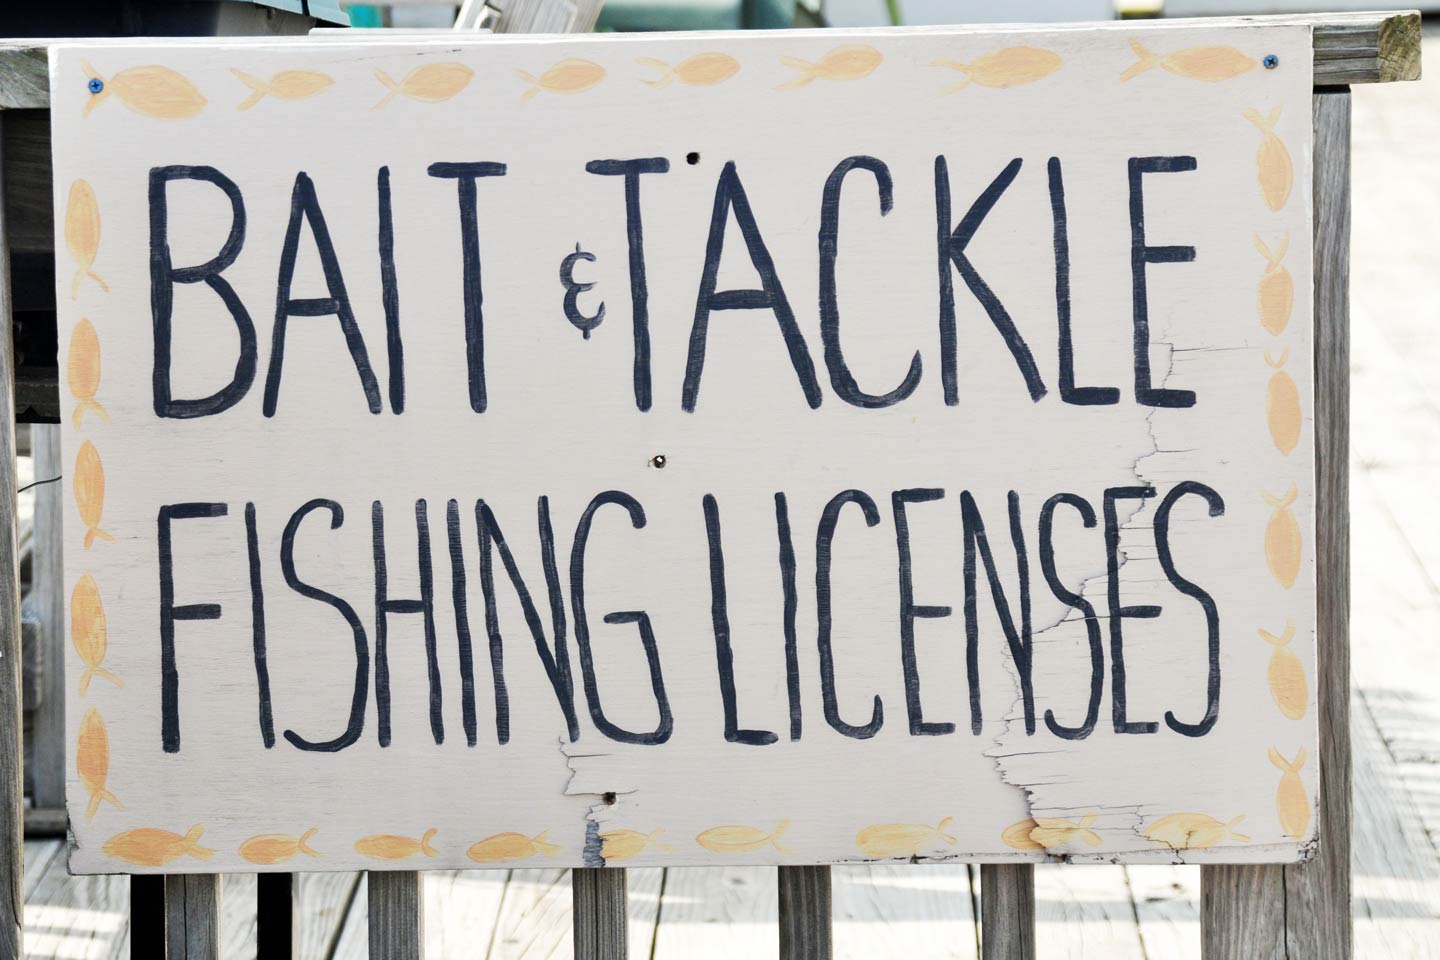 Signage at a tackle shop, advertising bait and fishing licenses.